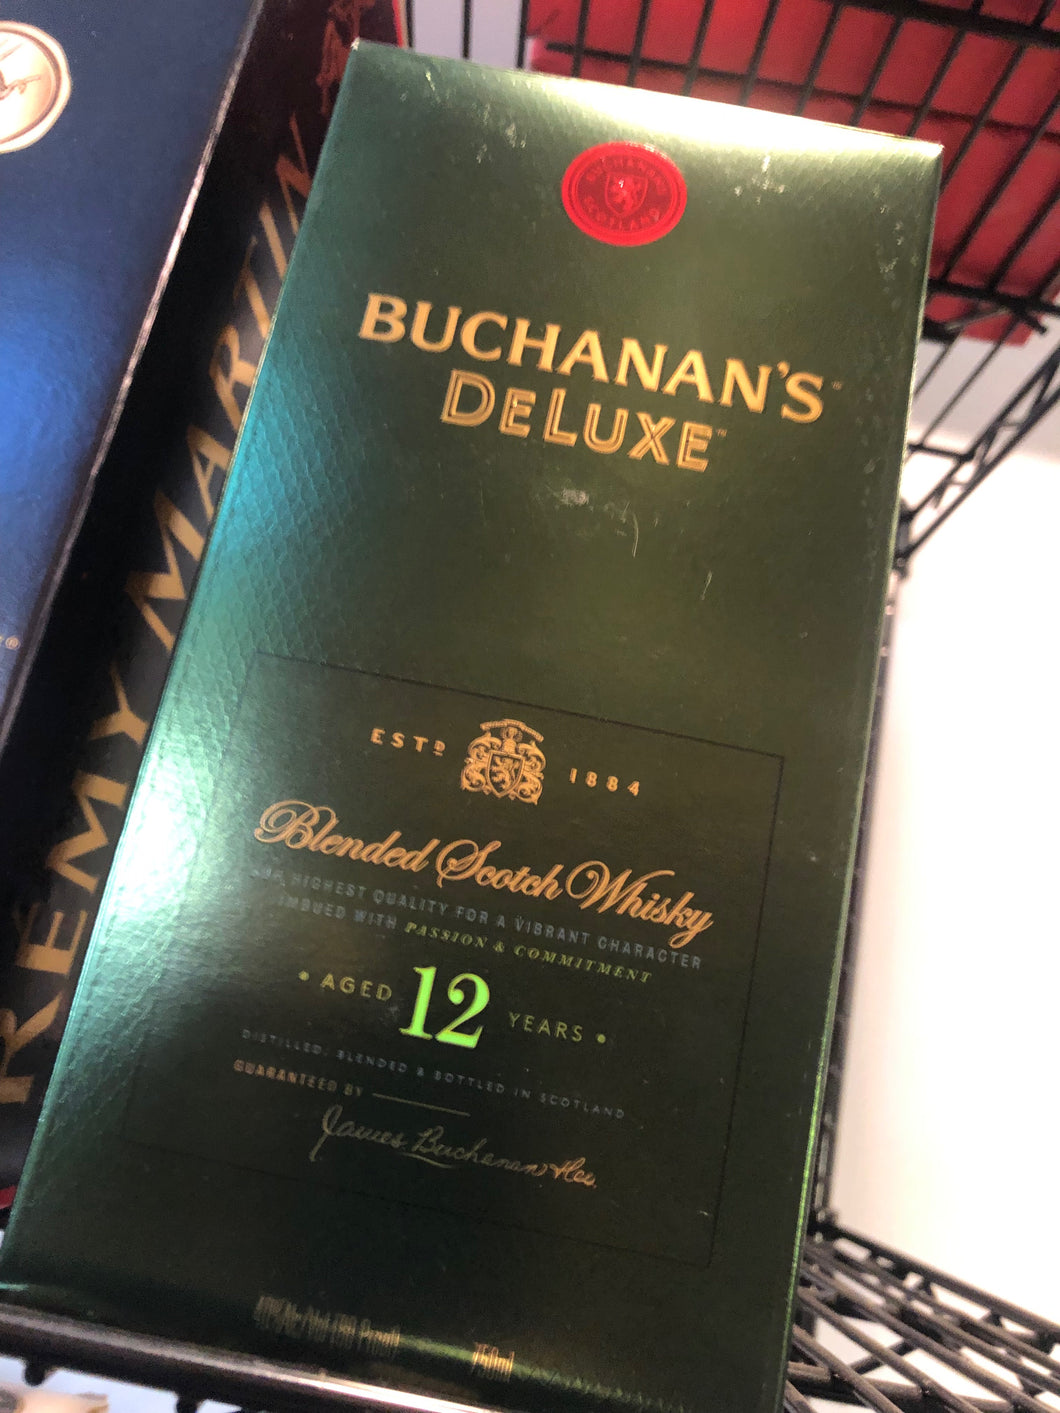 Buchannan's 12 Year Scotch